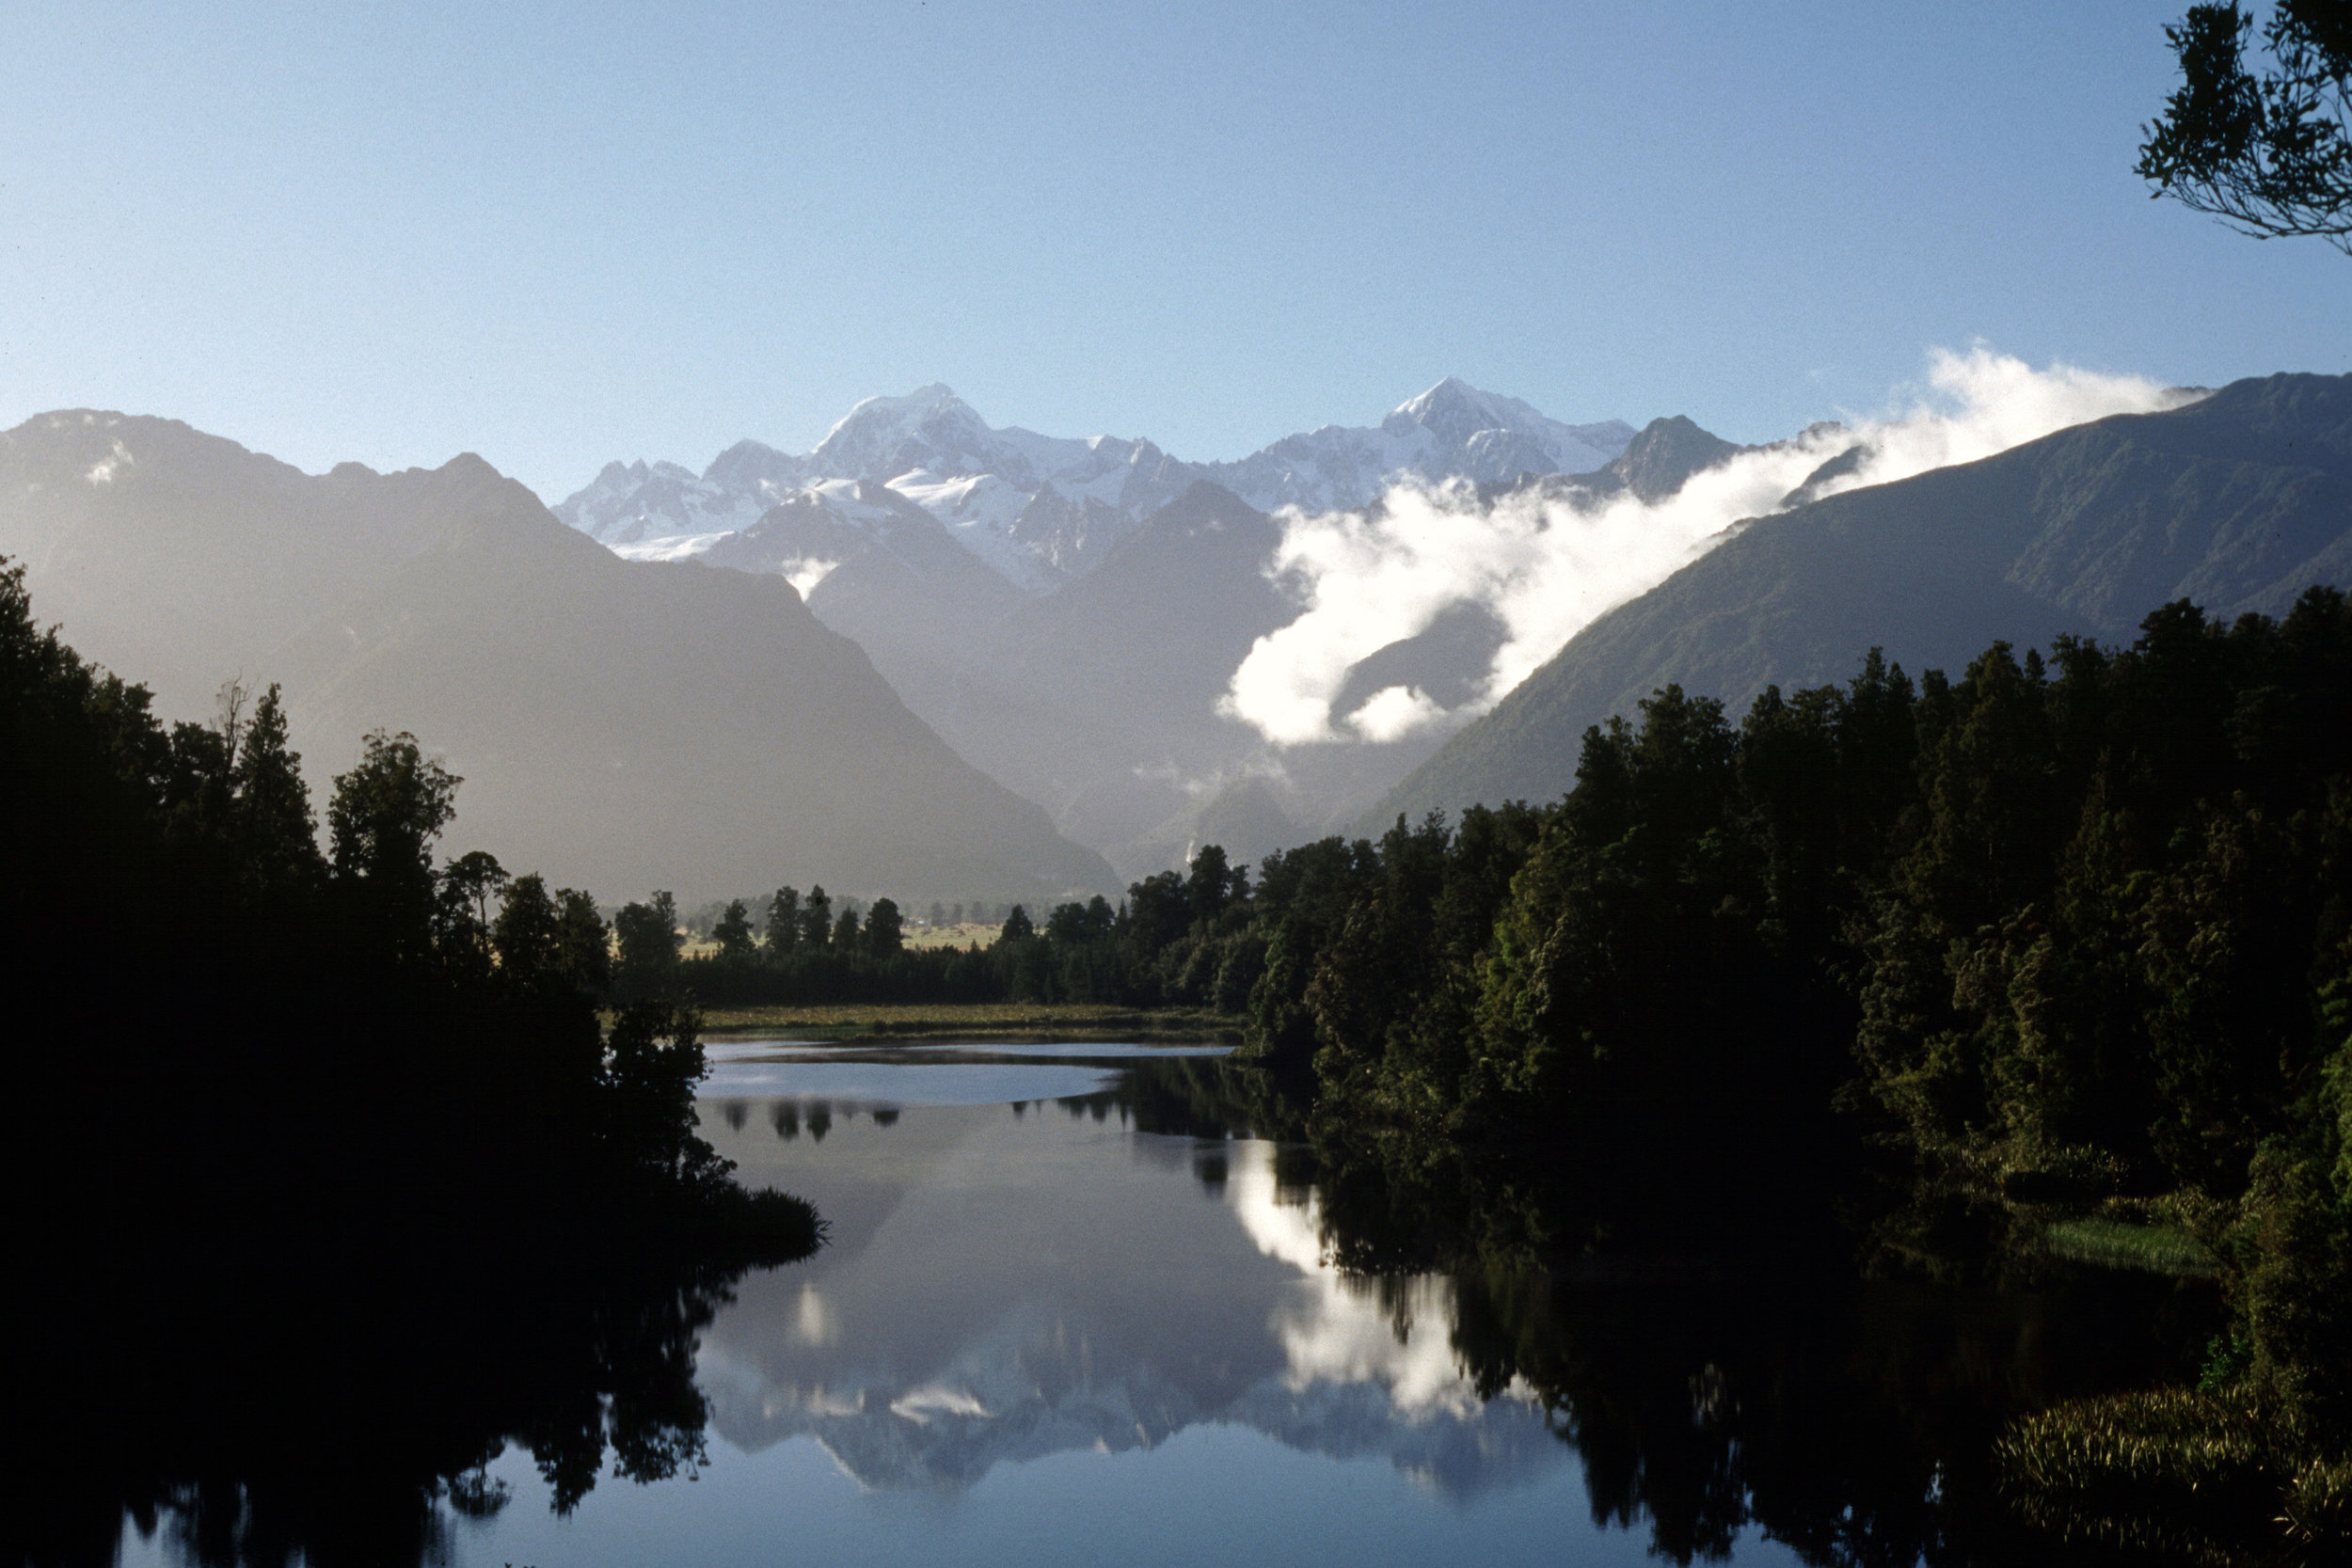 Lake Matheson, near Fox Glacier, Mount Cook and Mount Tasman reflected.